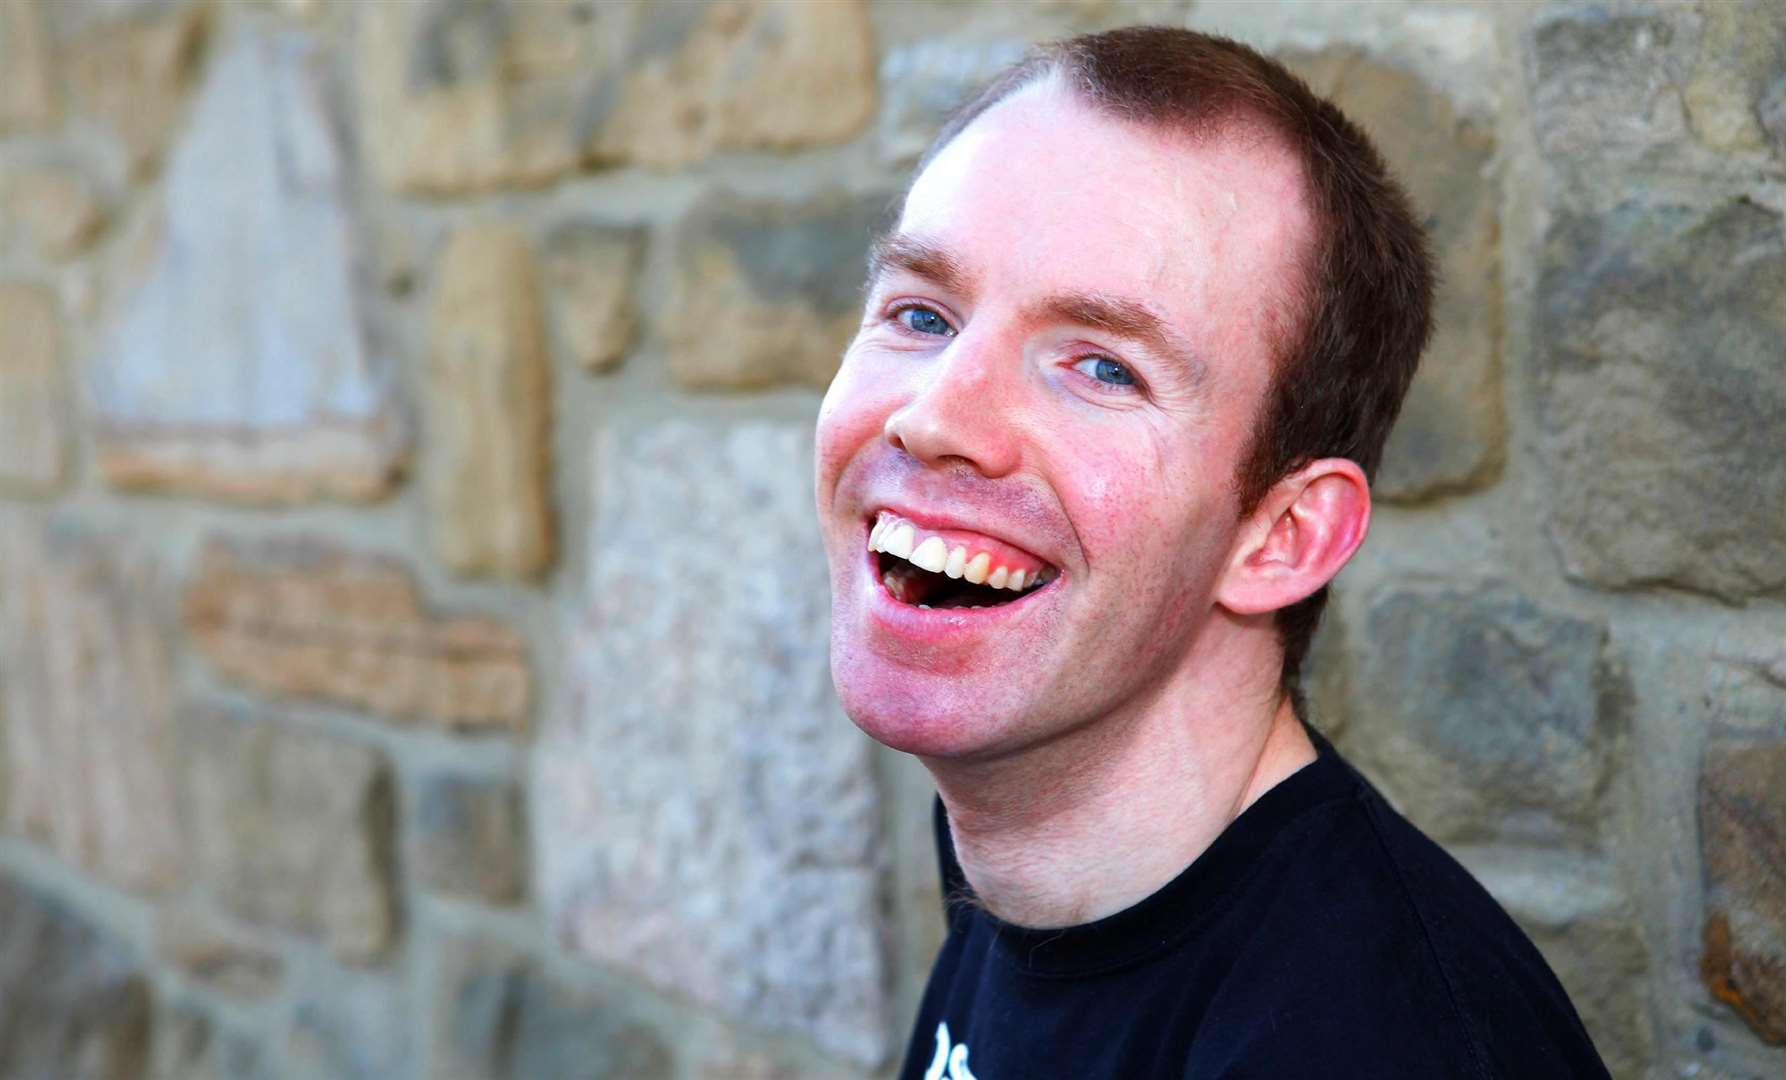 Lee Ridley, aka, Lost Voice Guy